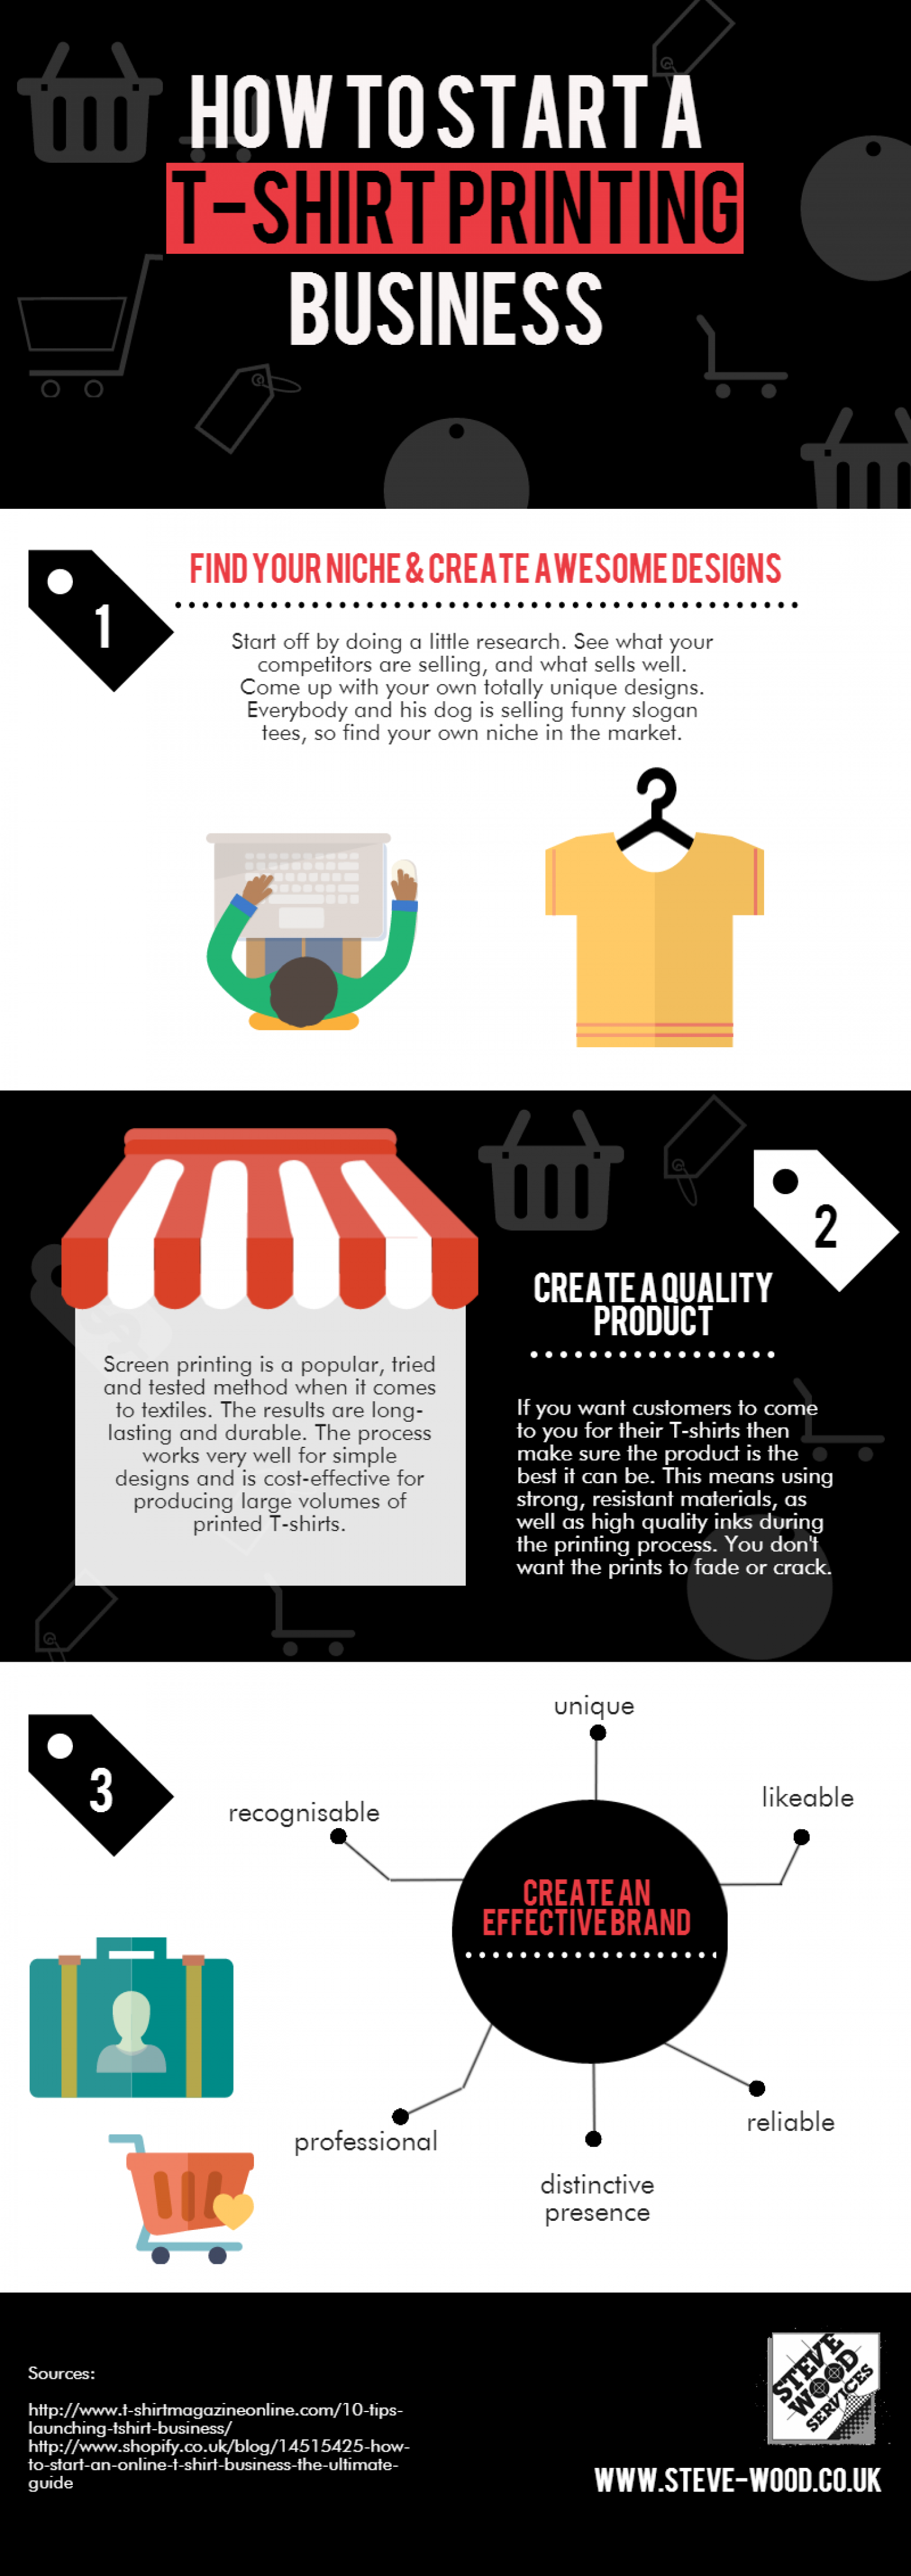 How to Start a T-Shirt Printing Business | Visual.ly